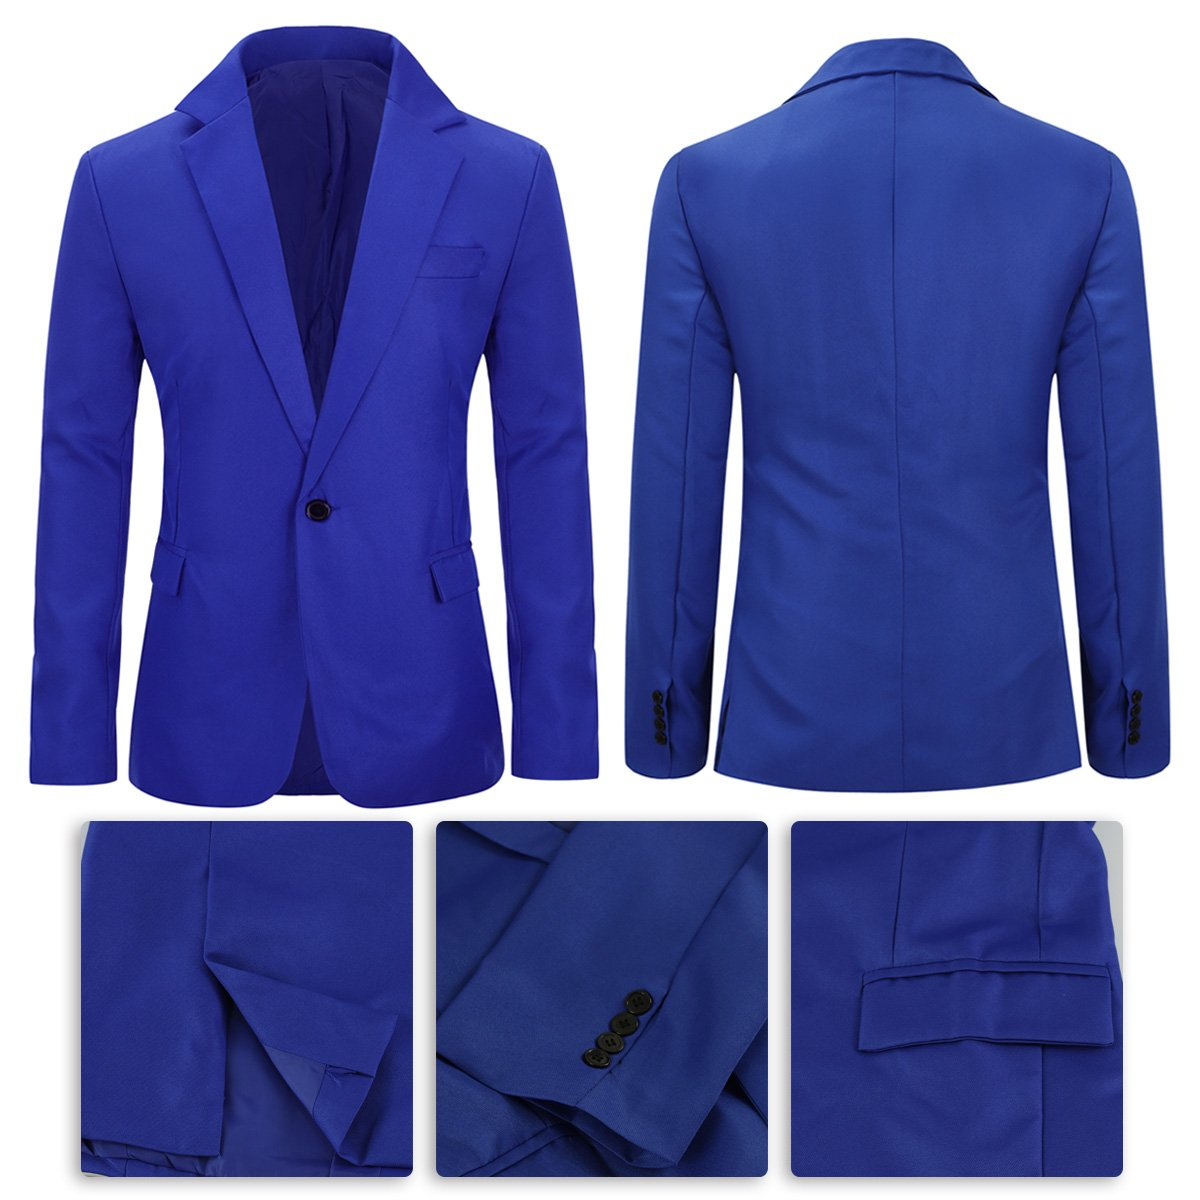 YUNCLOS Mens Slim Fit Casual One Button Notched Lapel Blazer Jacket LIXIN0050